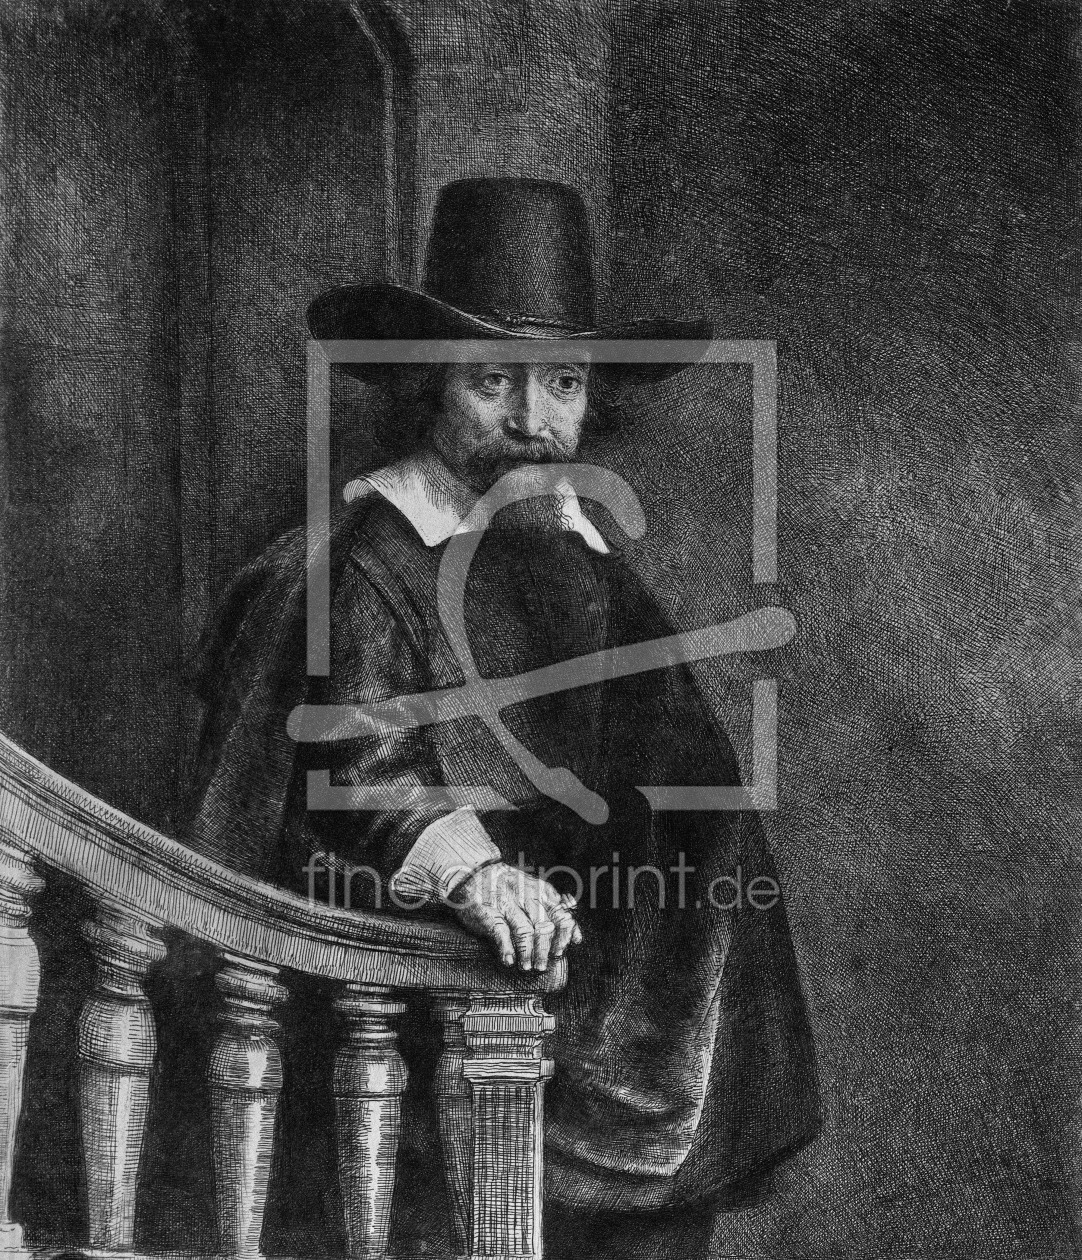 Bild-Nr.: 31001025 Ephraim Bonus, known as 'The Jew with the Banister' 1647 erstellt von Rembrandt Harmenszoon van Rijn